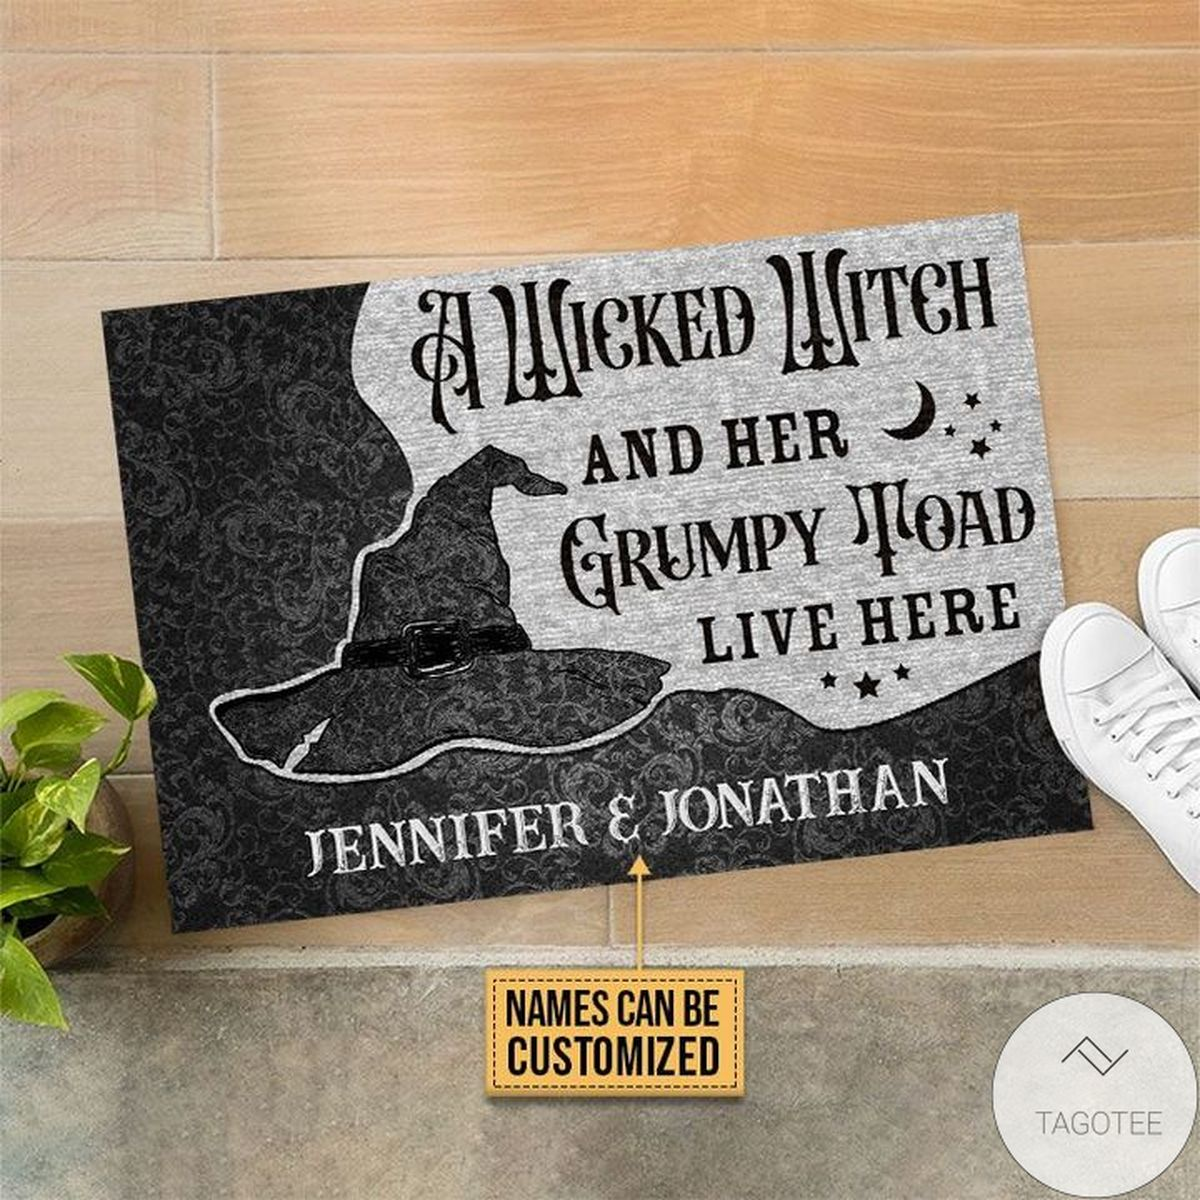 Absolutely Love Personalized Wicked Witch Grumpy Toad Live Here Doormat